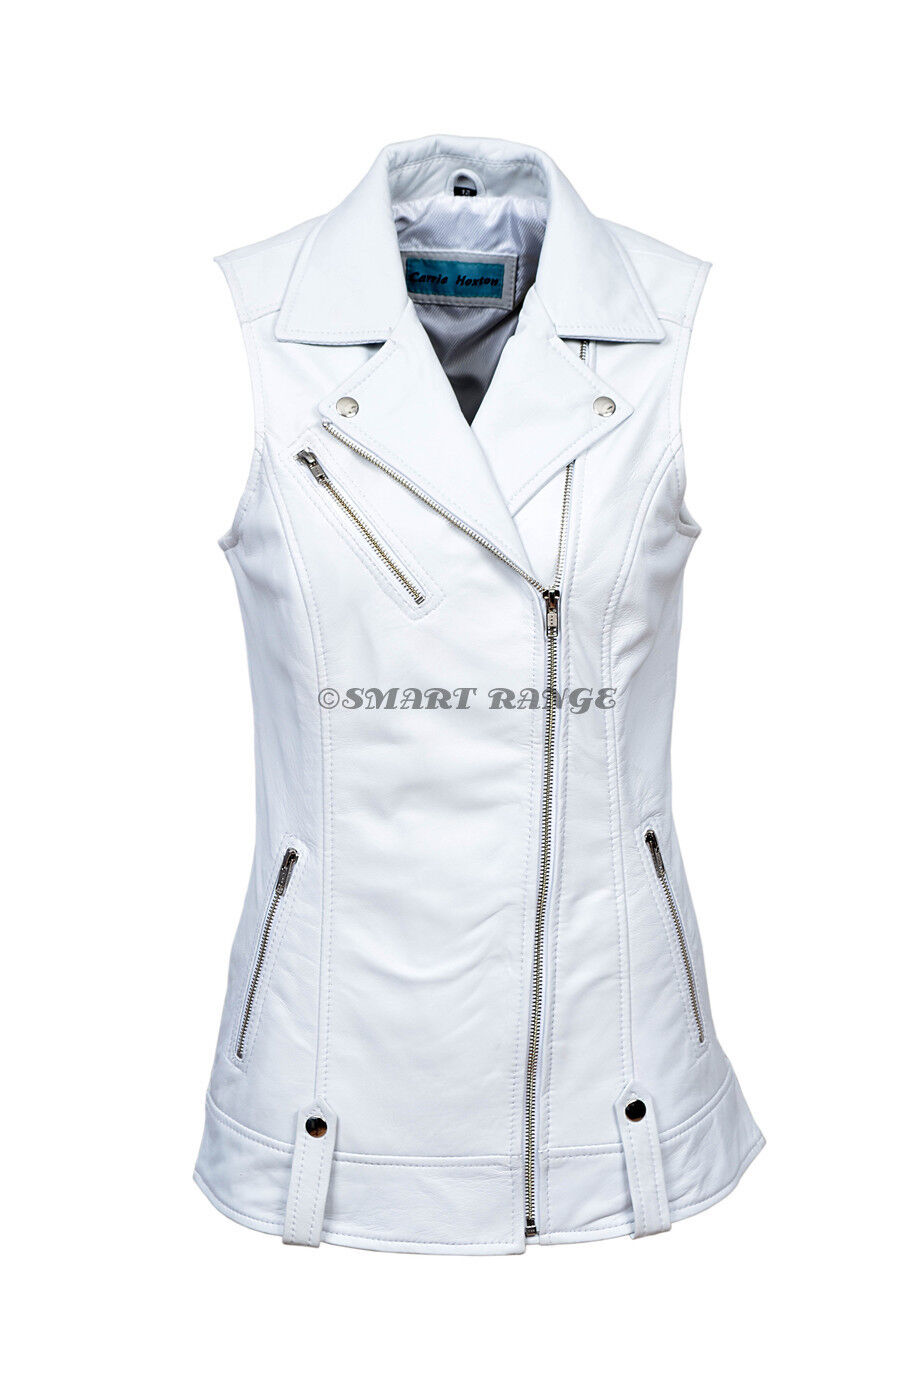 Ladies Leather Waistcoat White Motorcycle Biker Style Steam Punk REAL NAPA 6385